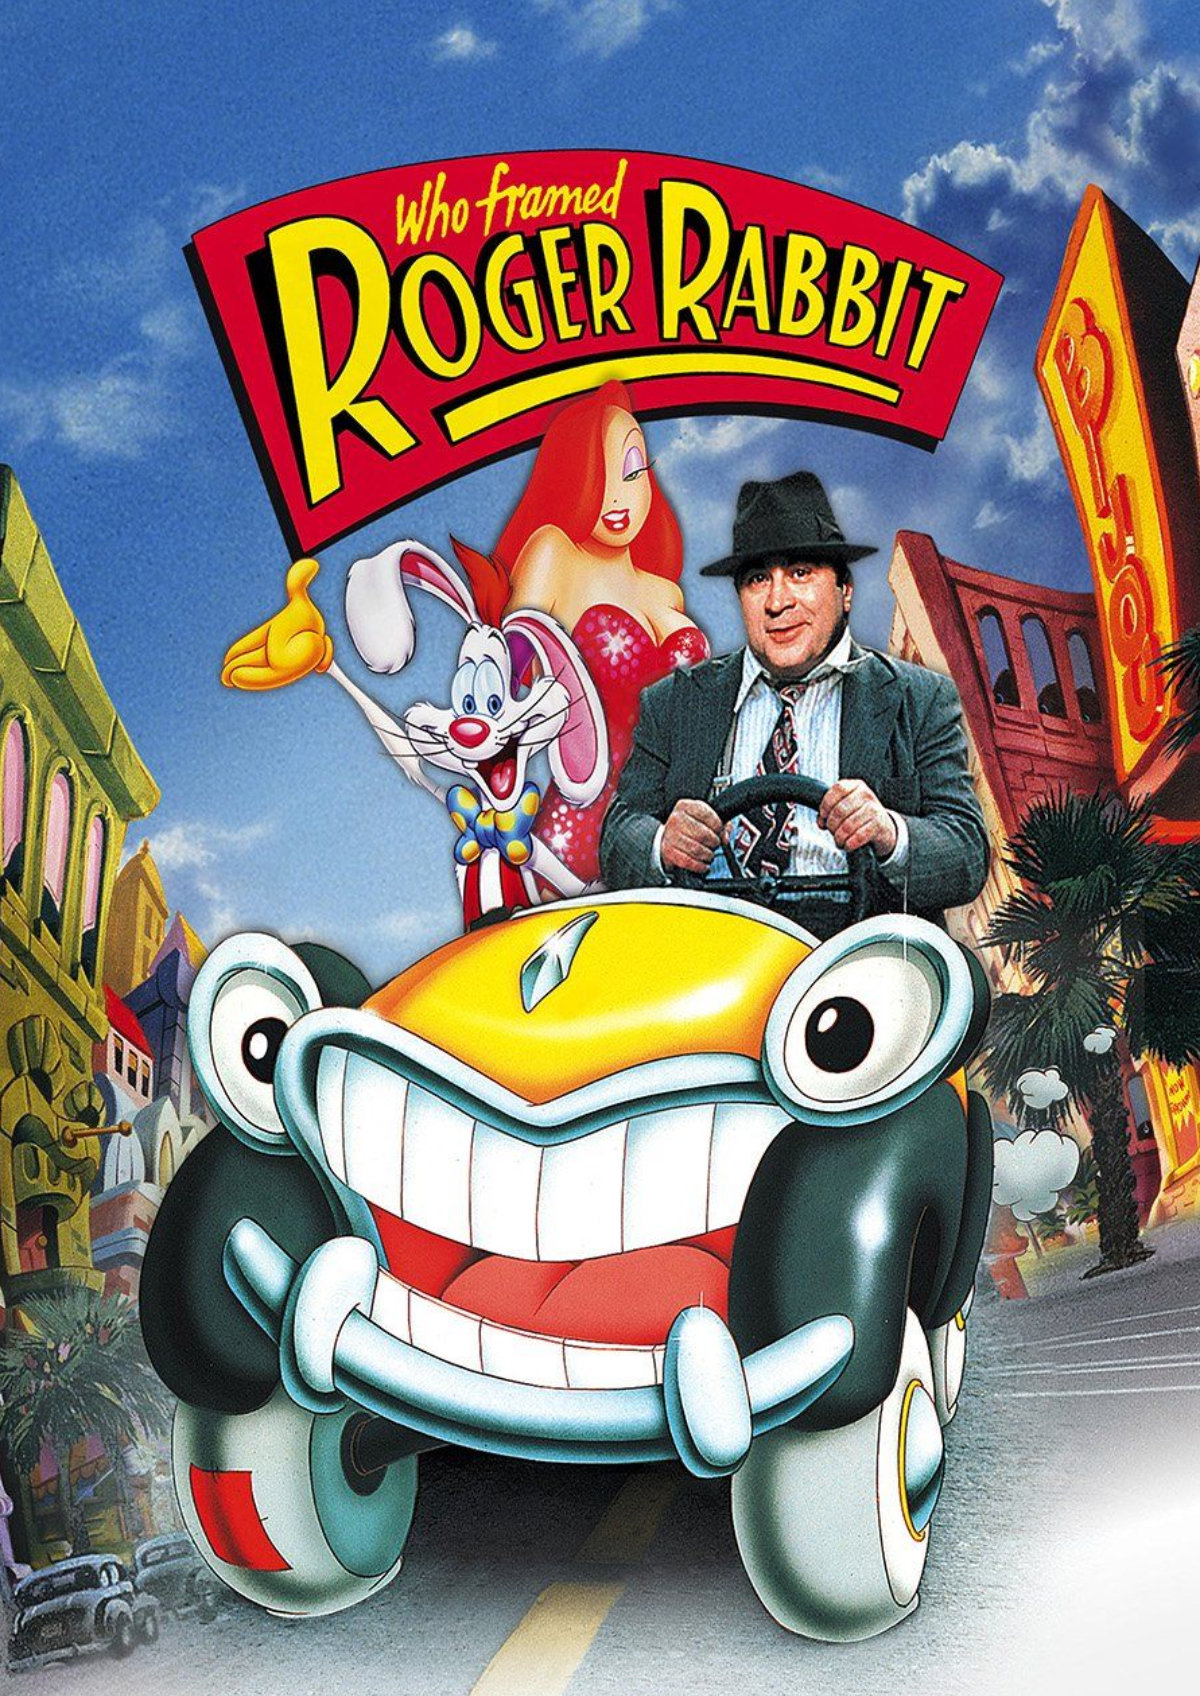 'Who Framed Roger Rabbit?' movie poster